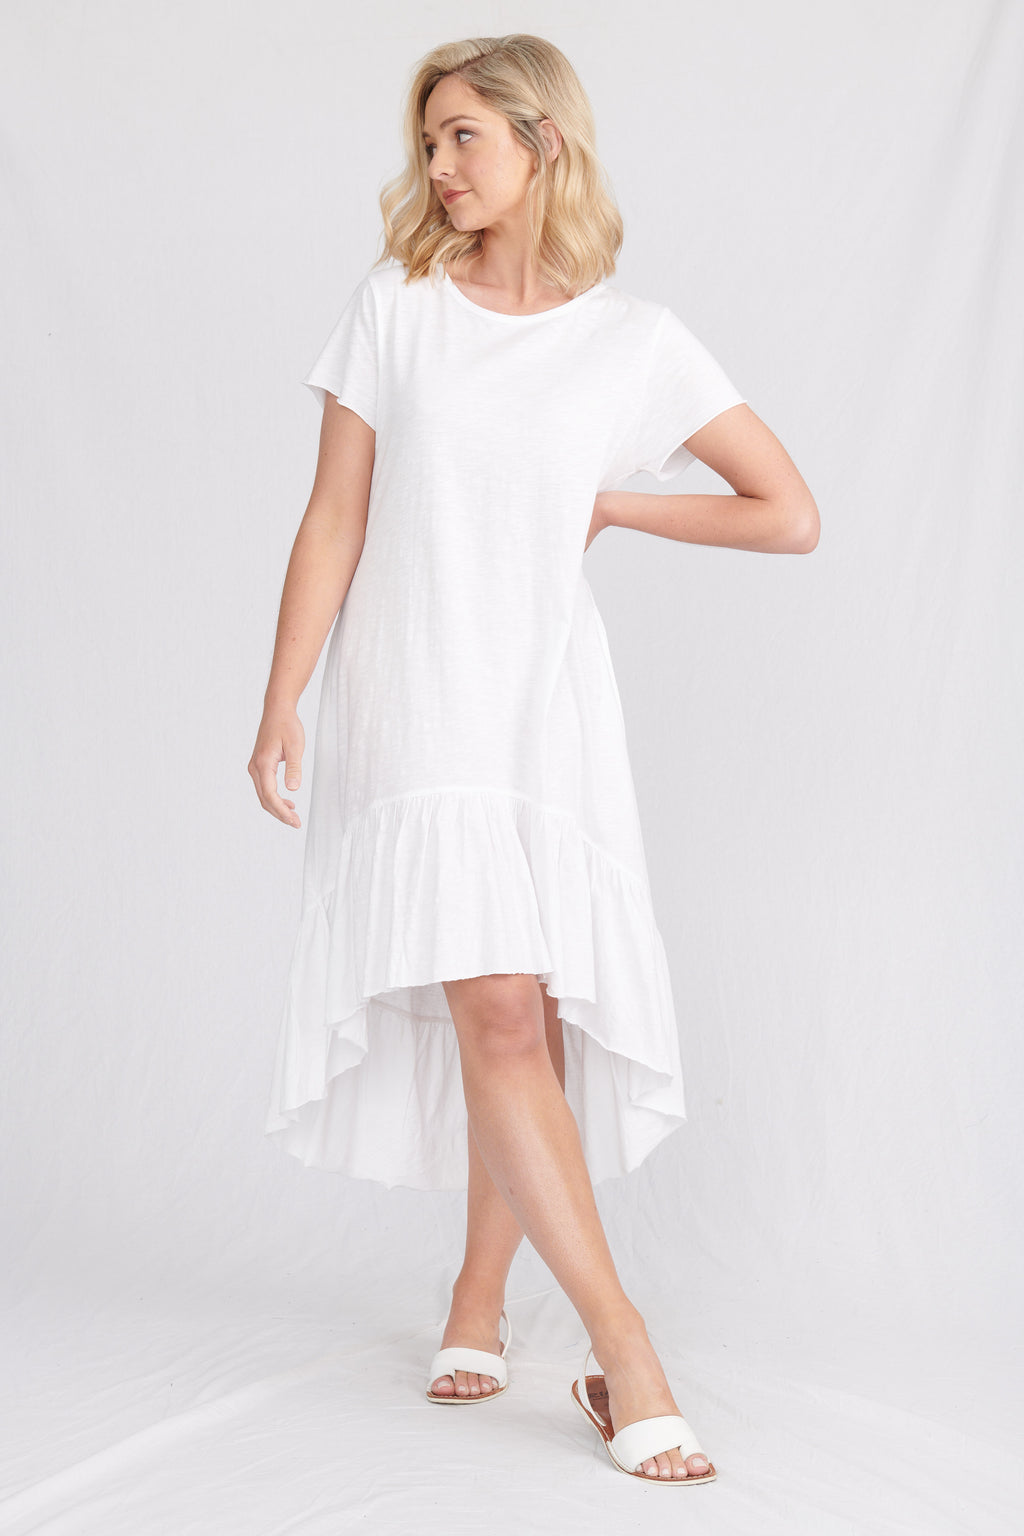 Lulu Organics Cotton Essentials - Somerville Dress White